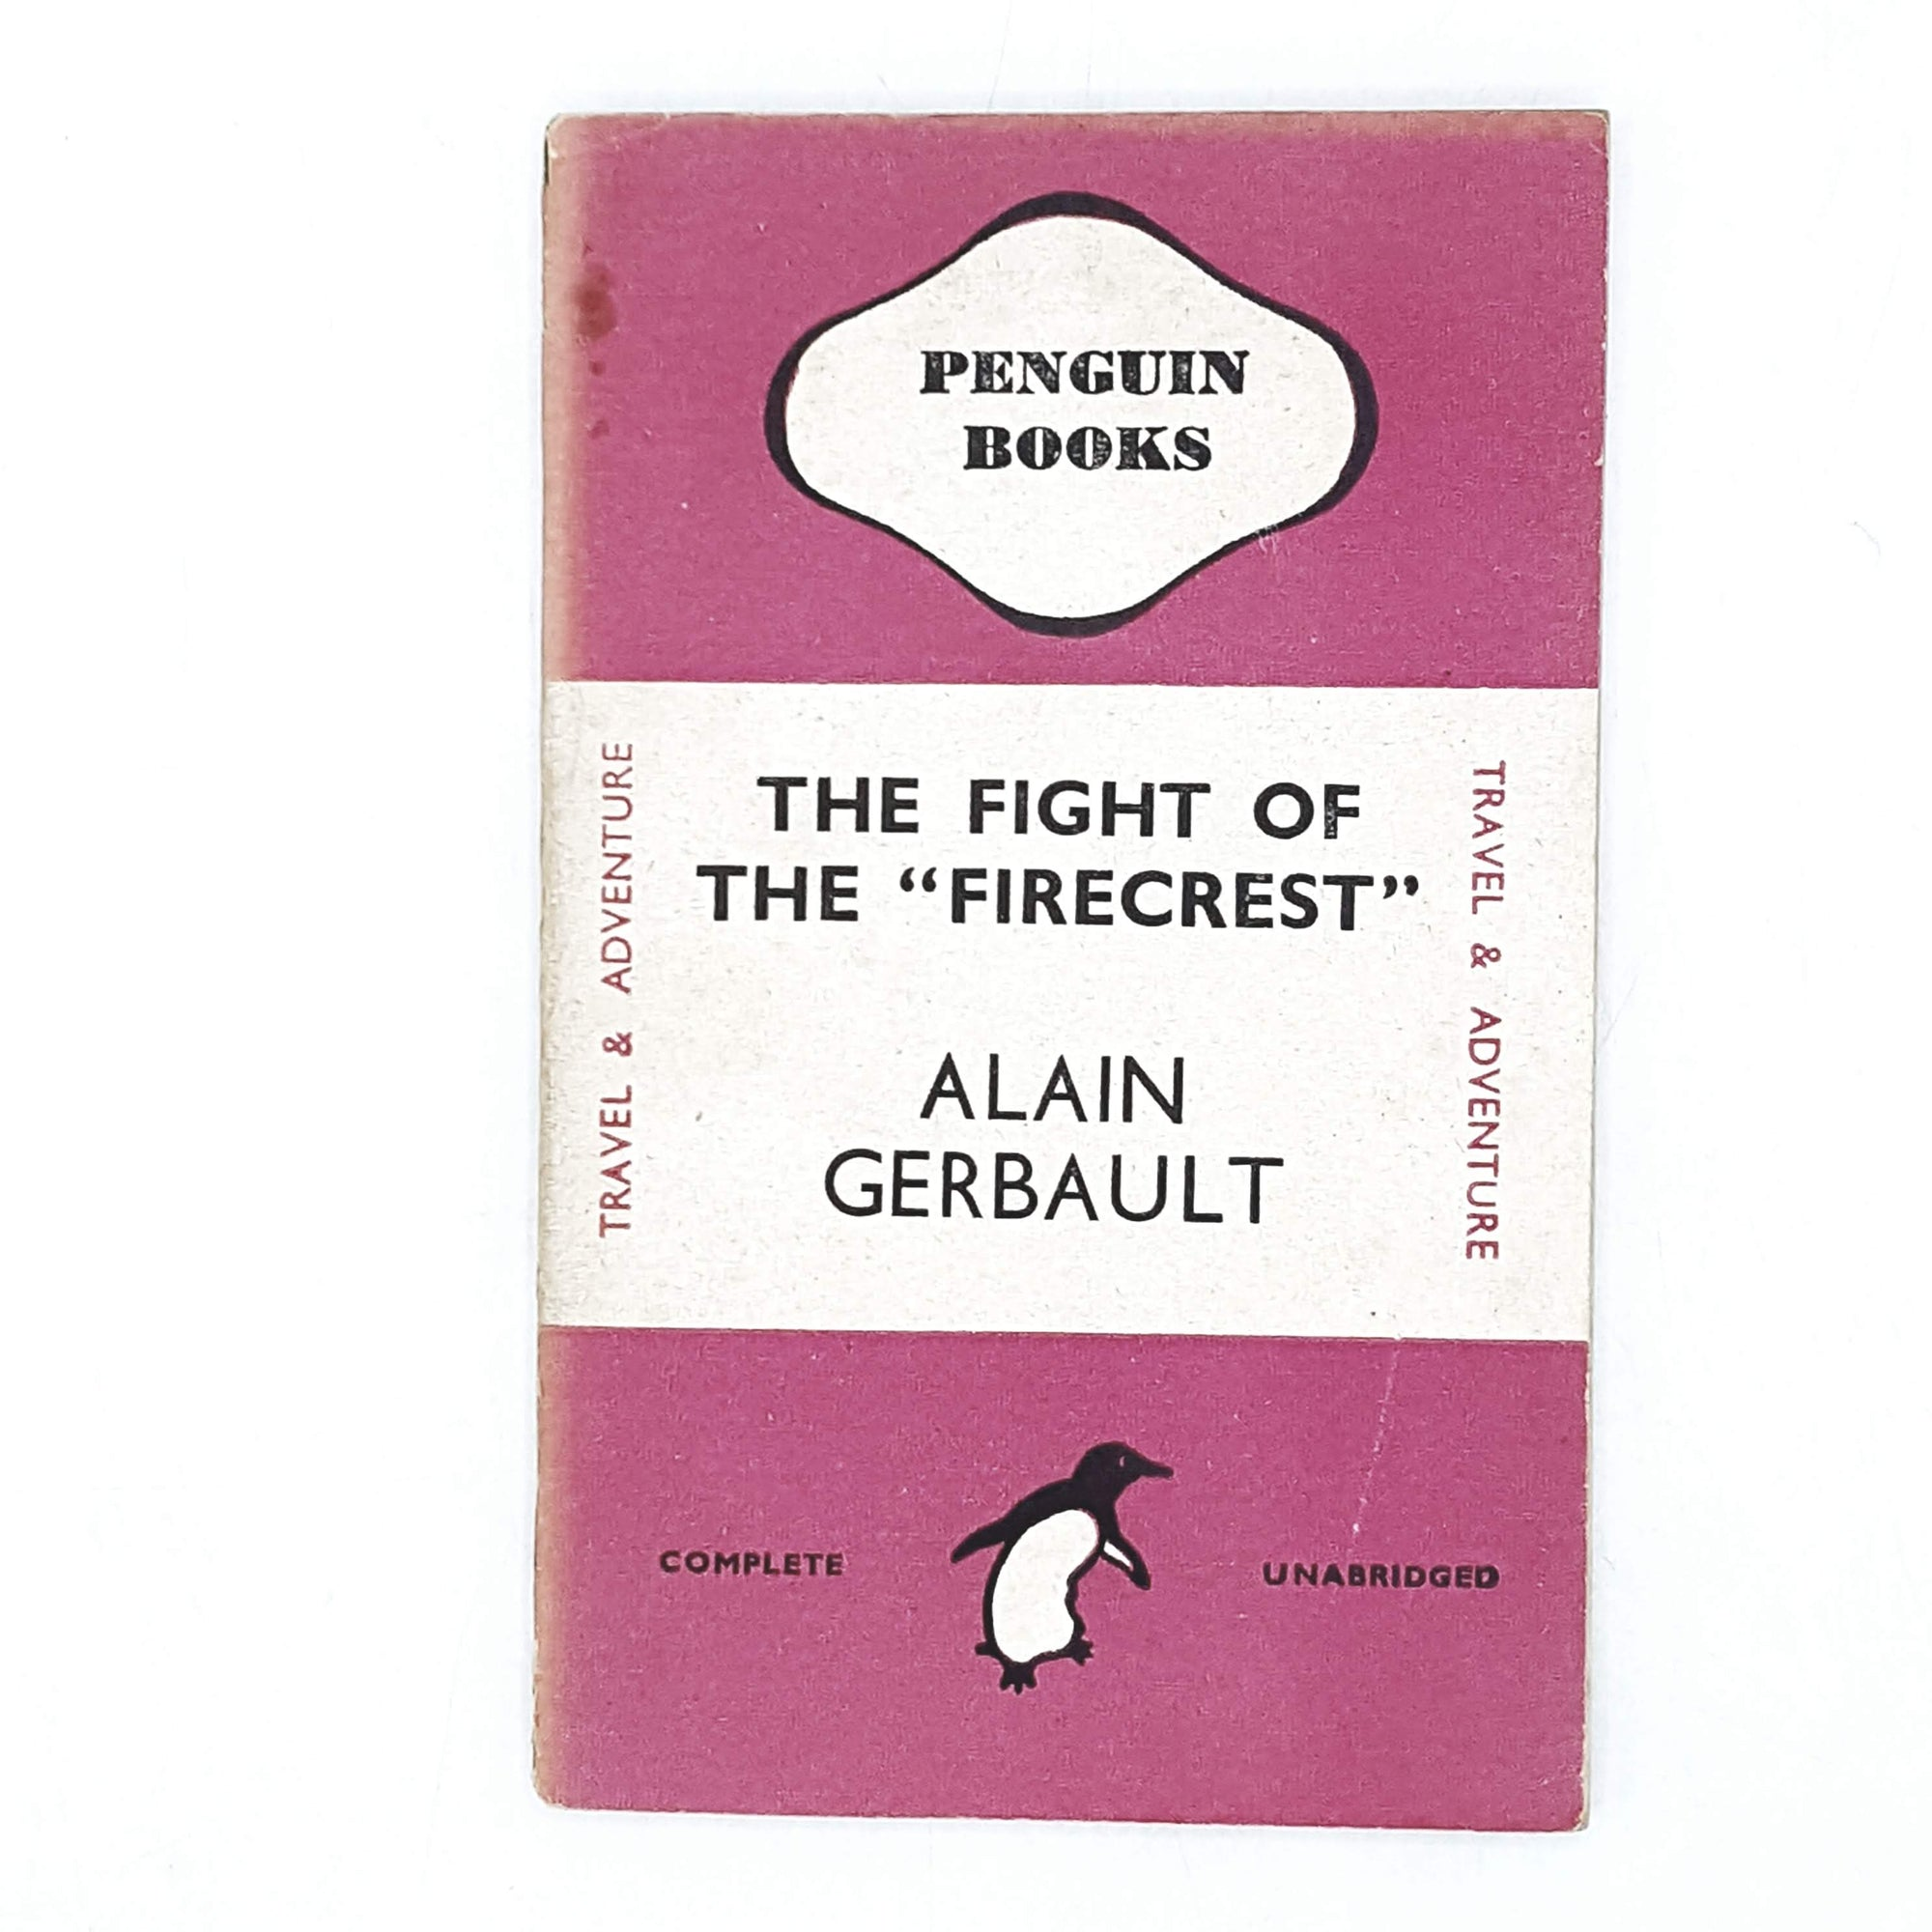 vintage-penguin-the-fight-of-the-firecrest-by-alain-gerbault-pink-travel-country-house-library